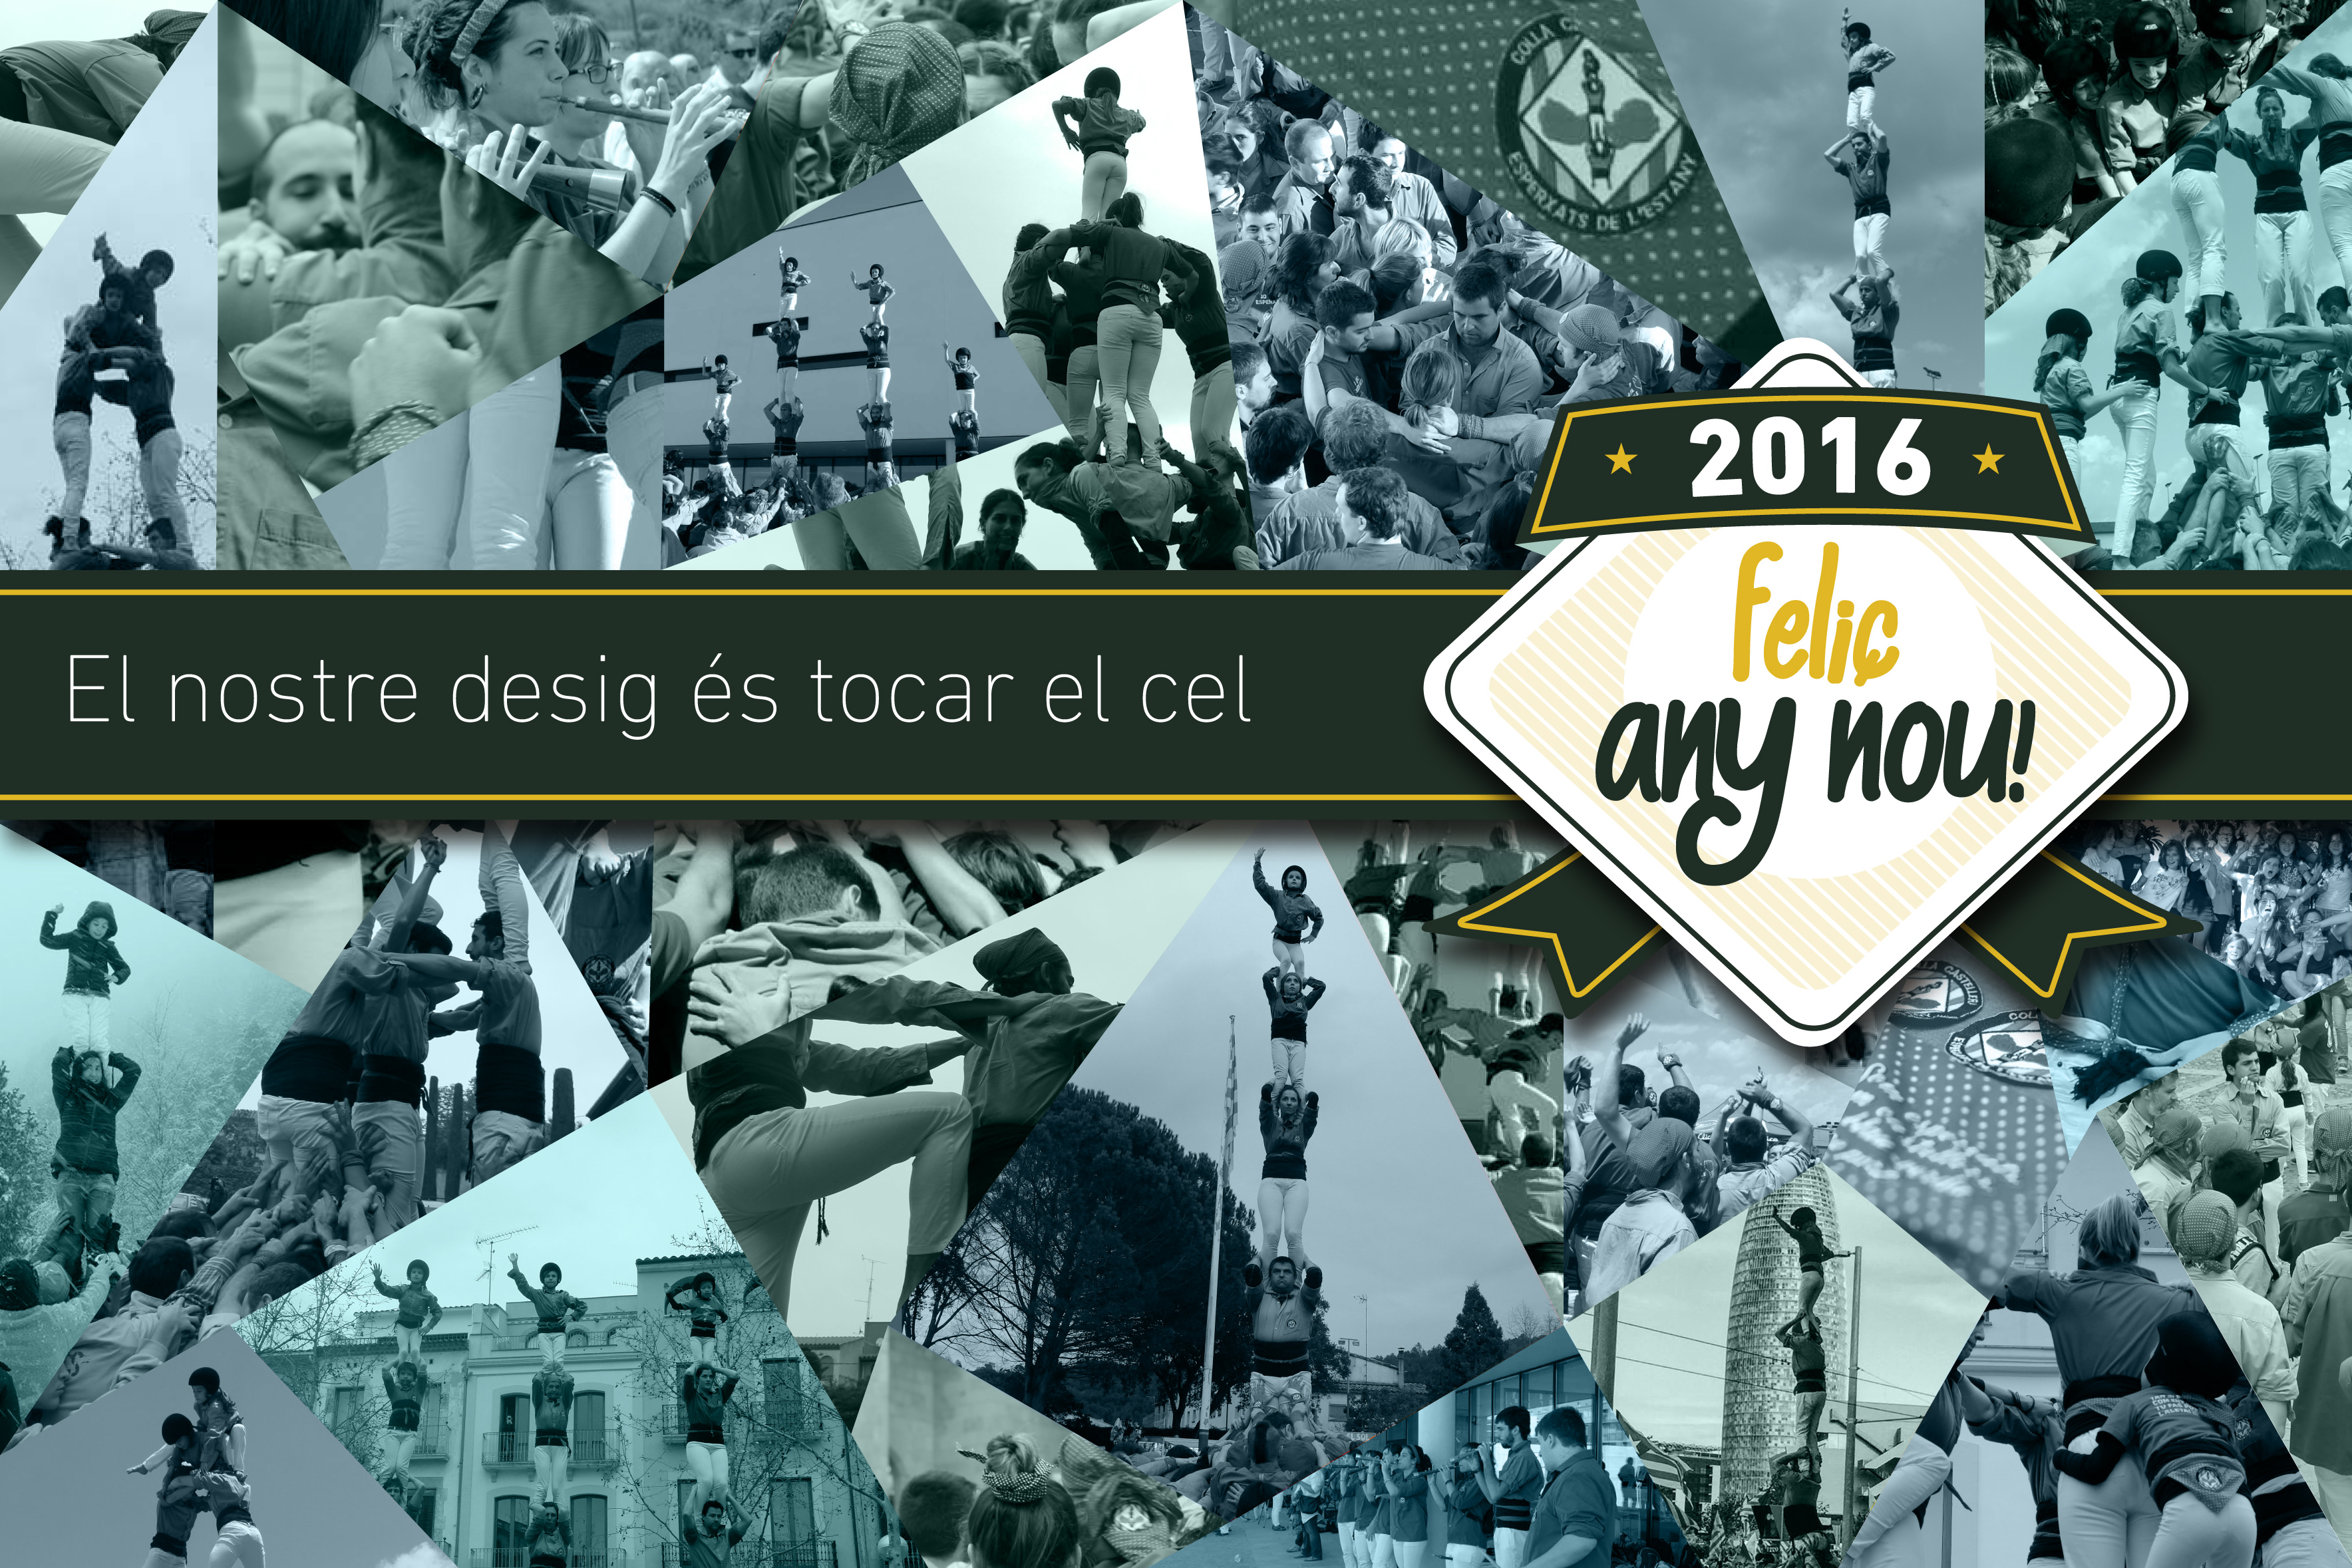 FELIÇ ANY NOU!  |  2016